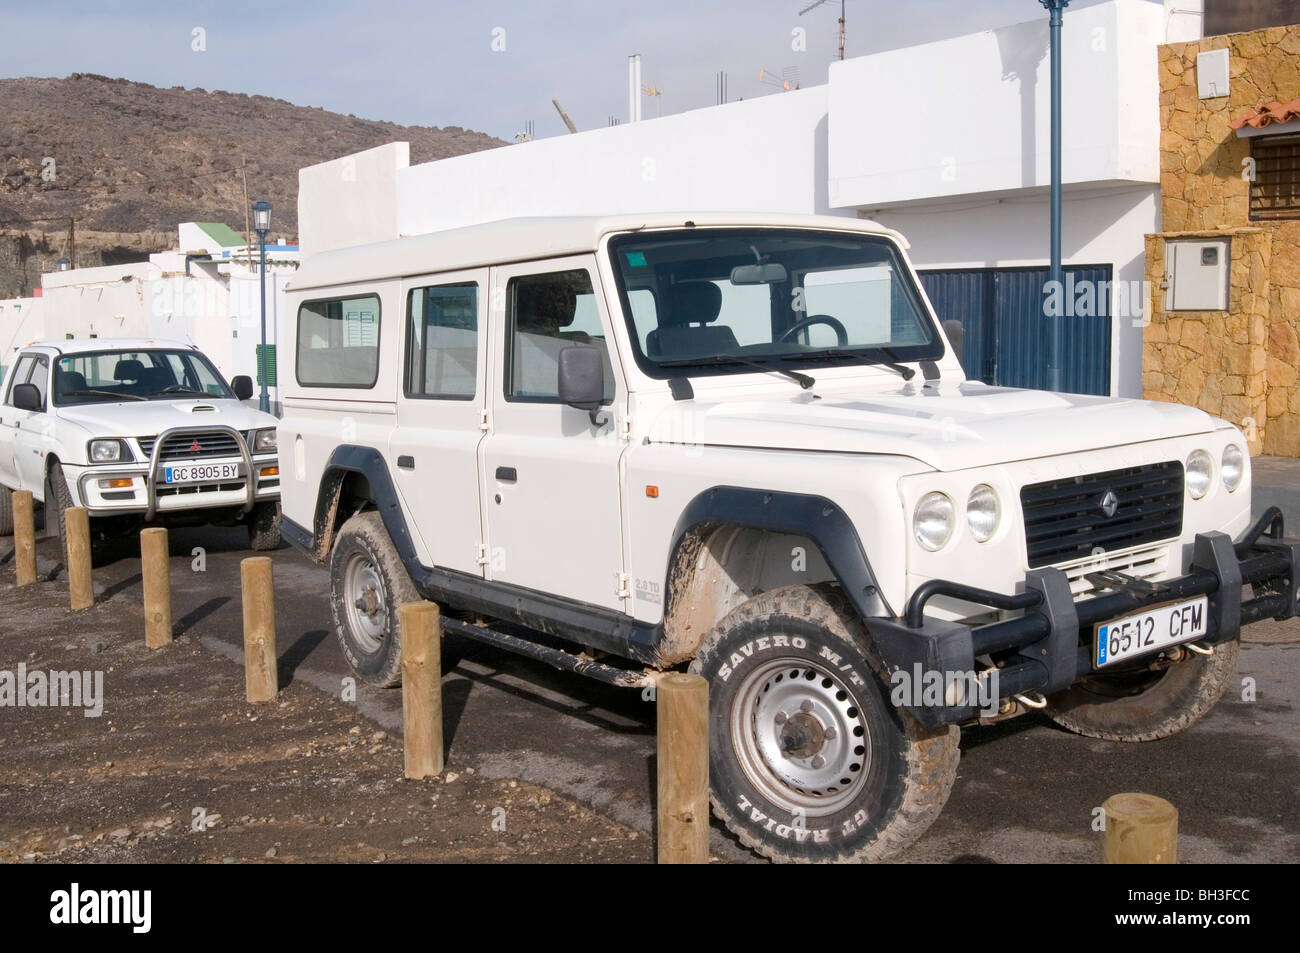 santana land rover spanish made in spain under license from rover stock photo 27737484 alamy. Black Bedroom Furniture Sets. Home Design Ideas